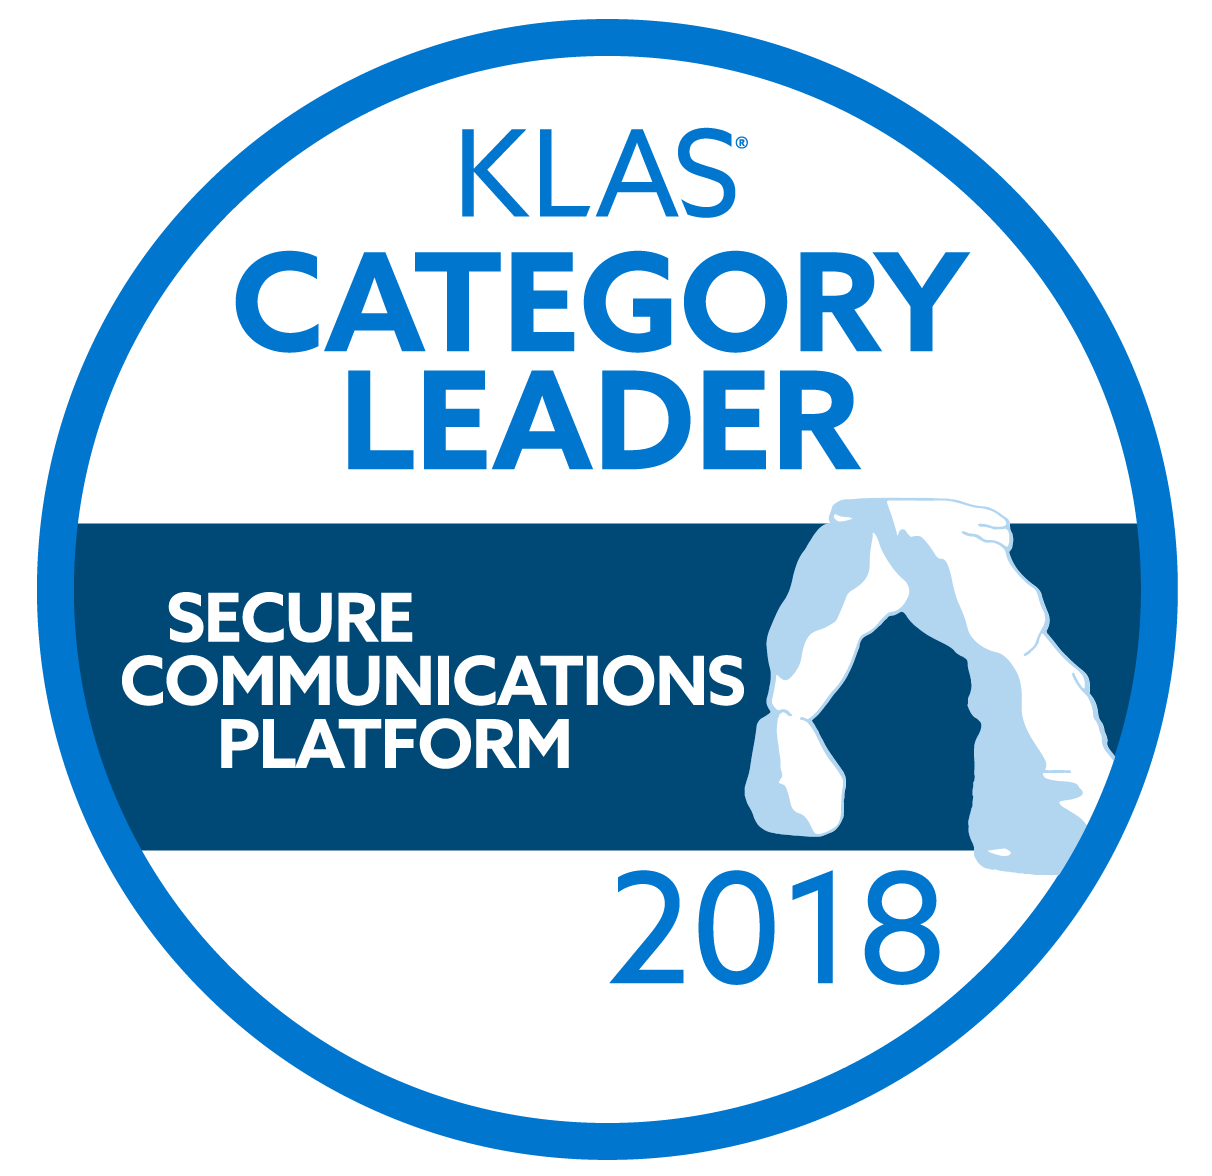 KLAS-Category-Leader-Secure-Communications.png